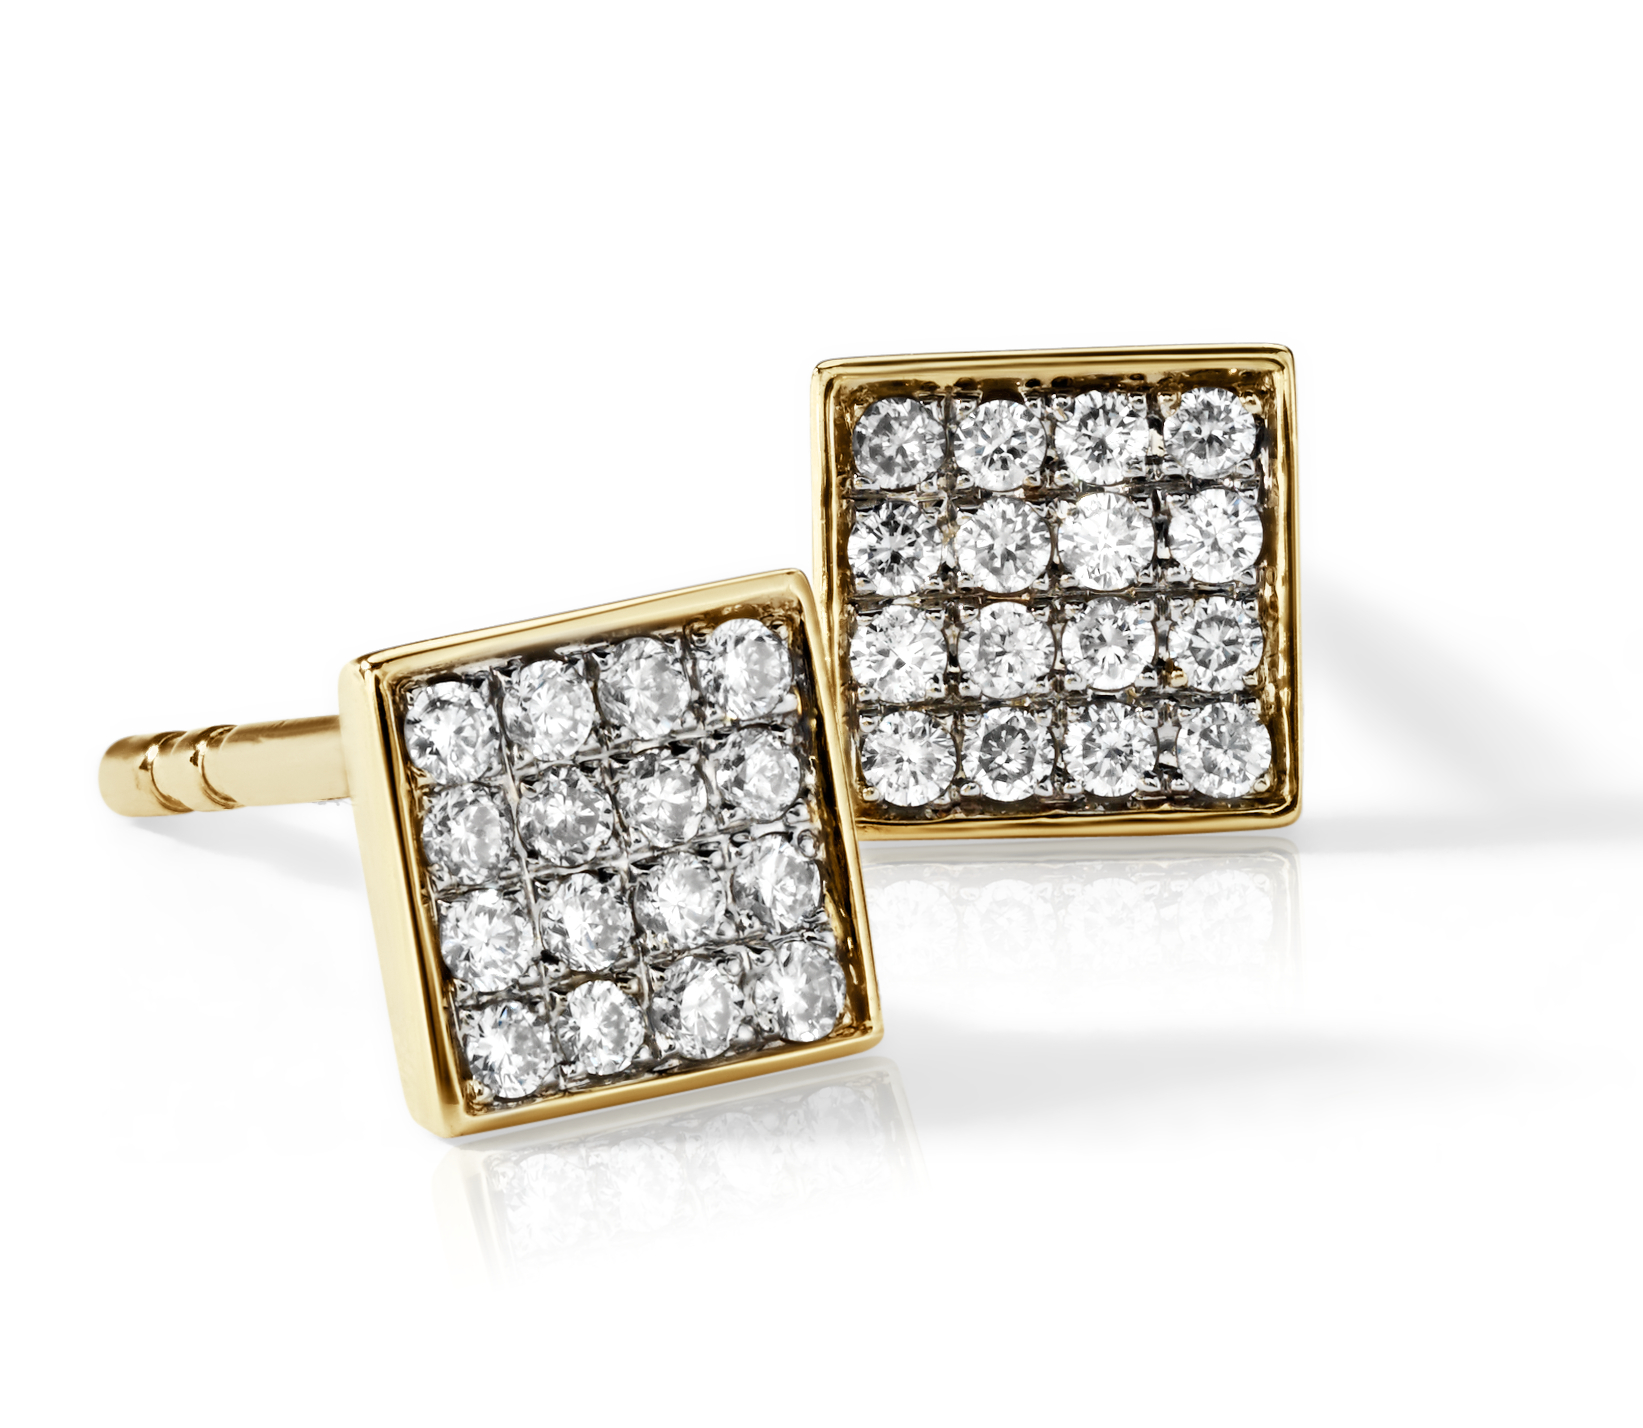 Mini Square Diamond Earrings in 14k Yellow Gold